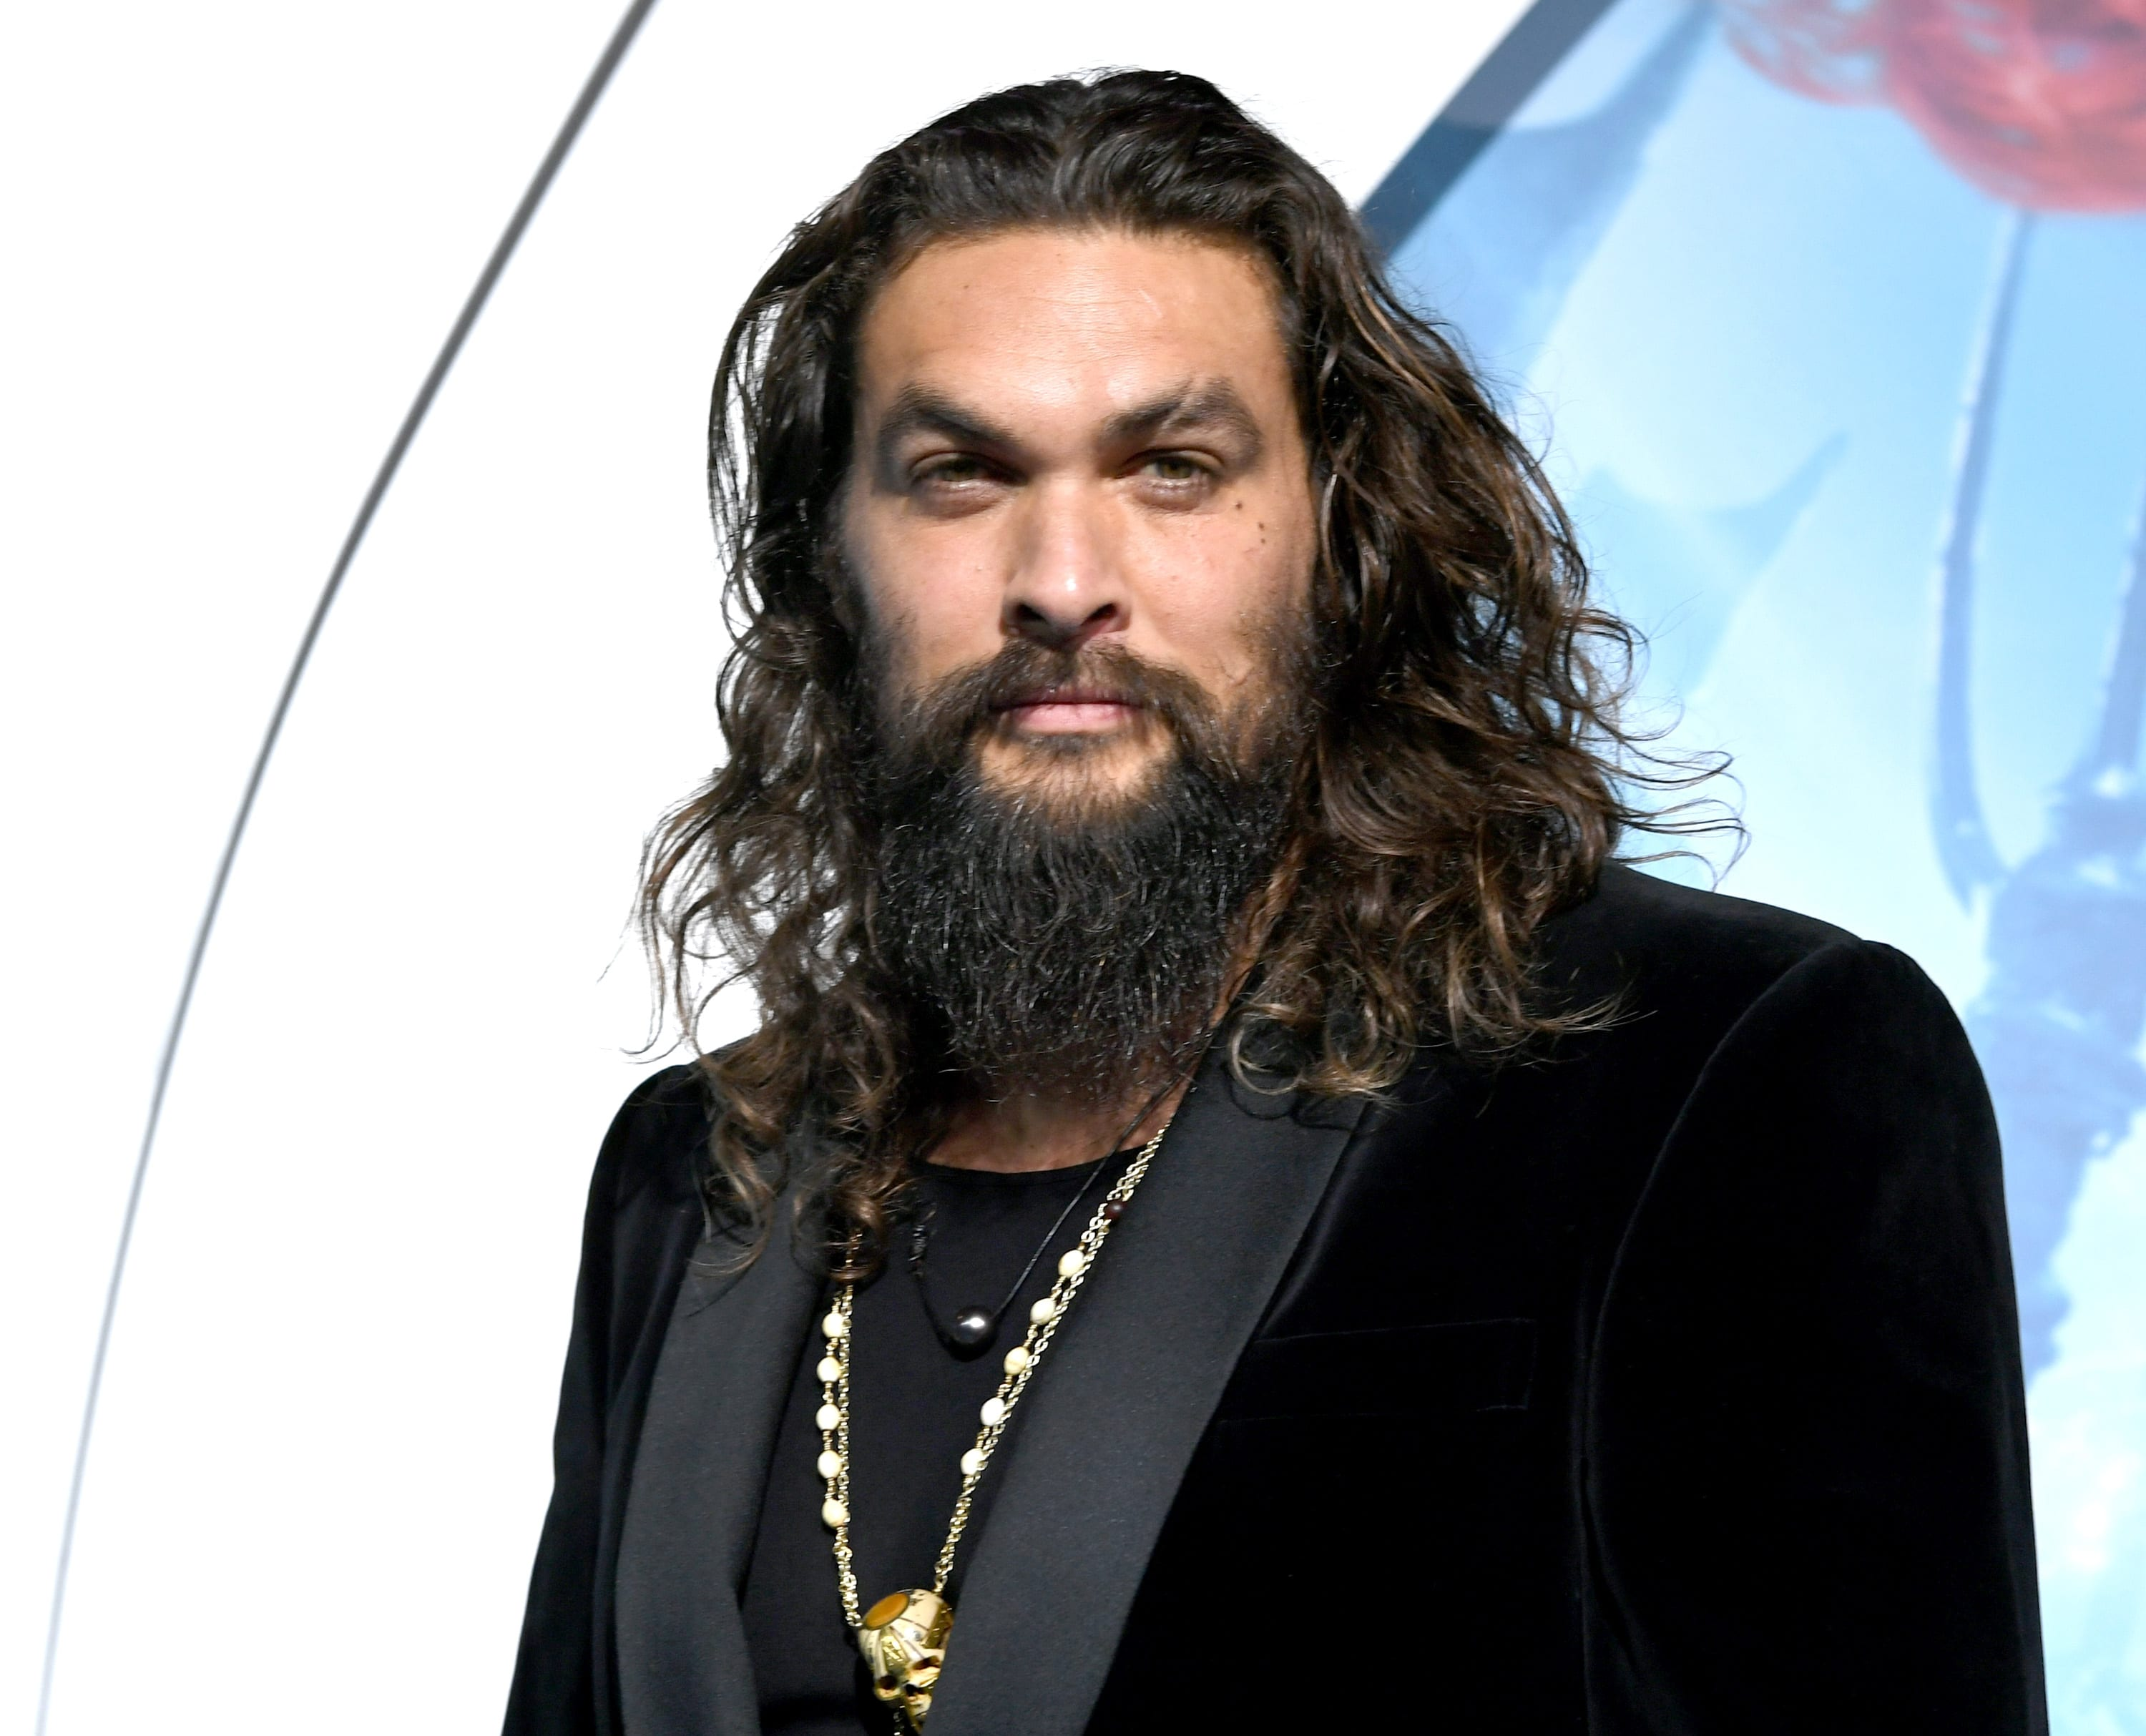 'Aquaman' star Jason Momoa was once too 'broke to fly home' when filming 'Game of Thrones'